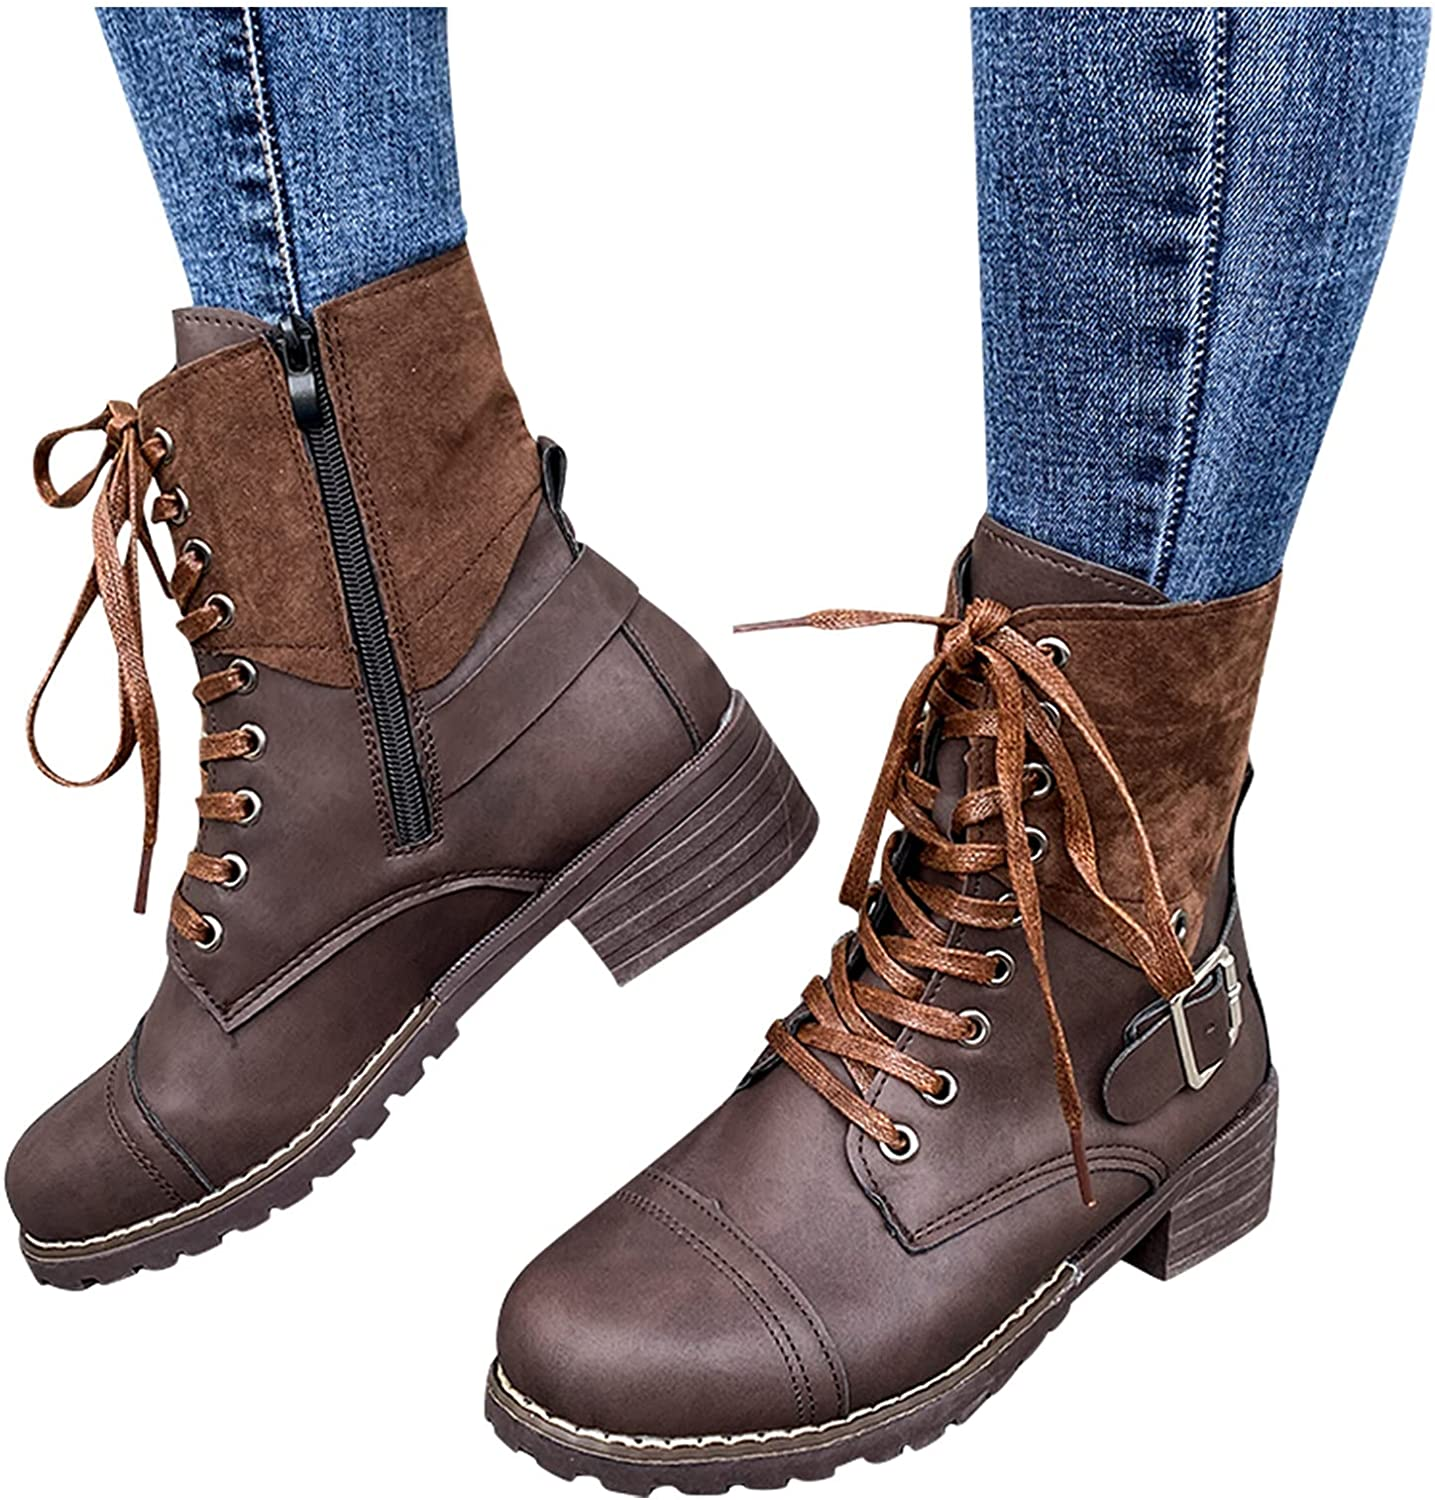 NLOMOCT Boots for Women Ankle Booties, Round Toe Buckle Strap Mid Calf Boots Winter Warm Platform Boots Snow